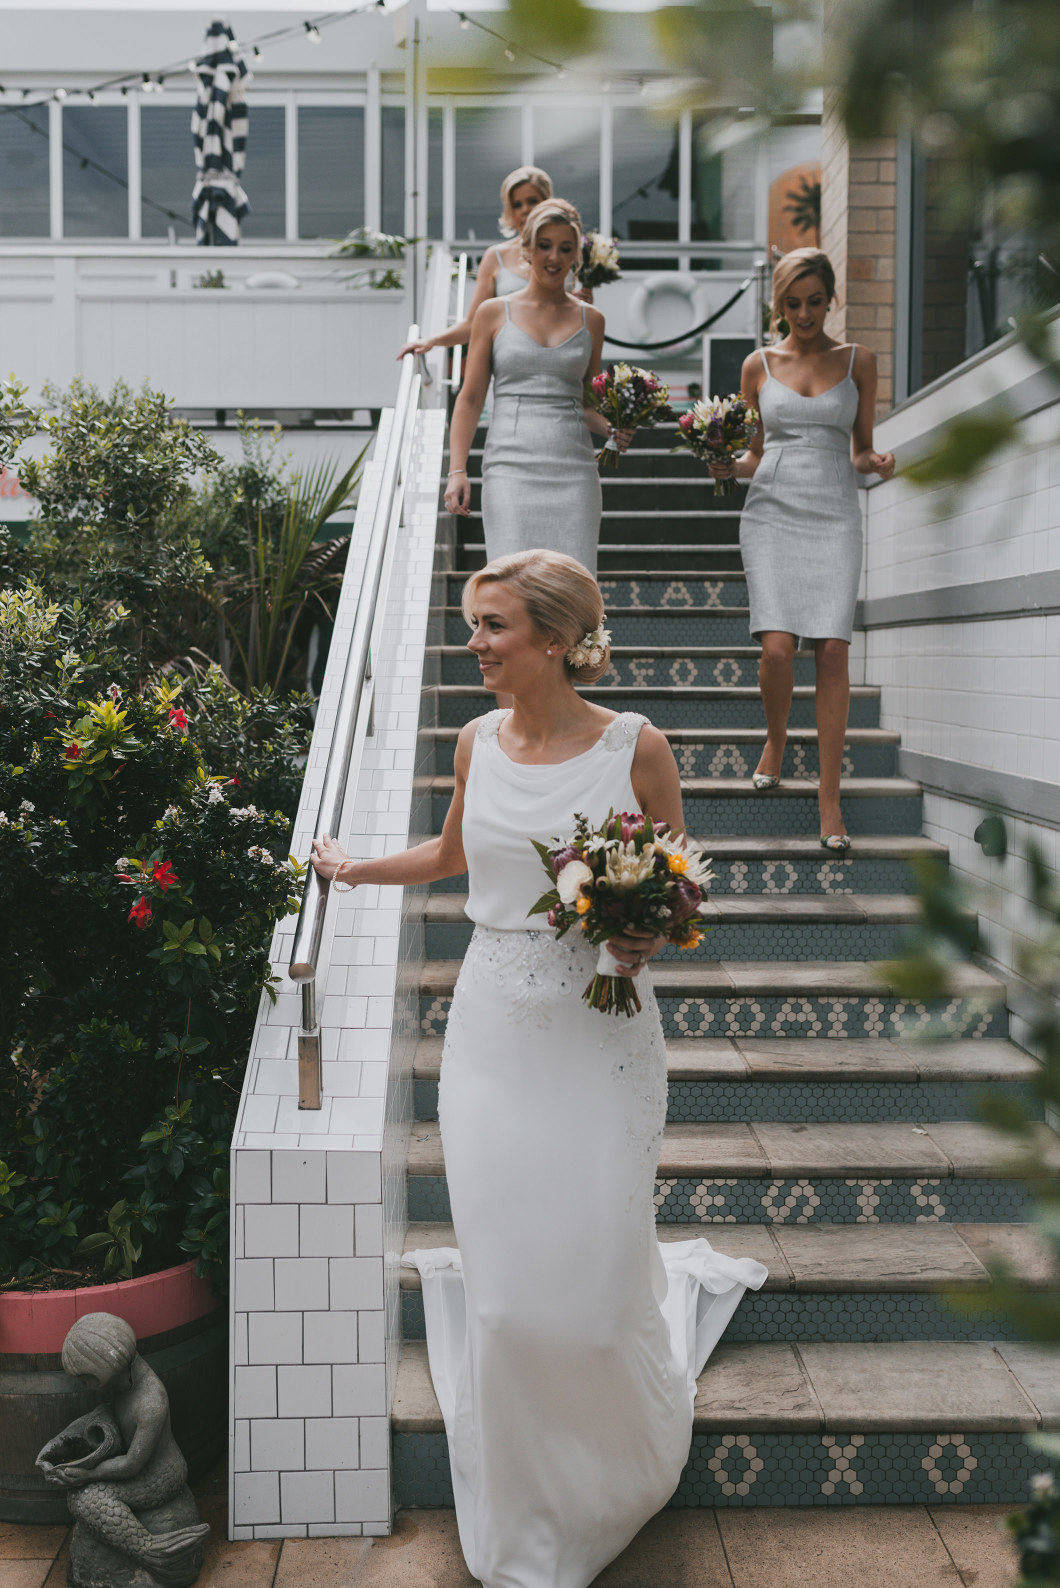 Watons bay Vaucluse House Sydney Wedding-10028